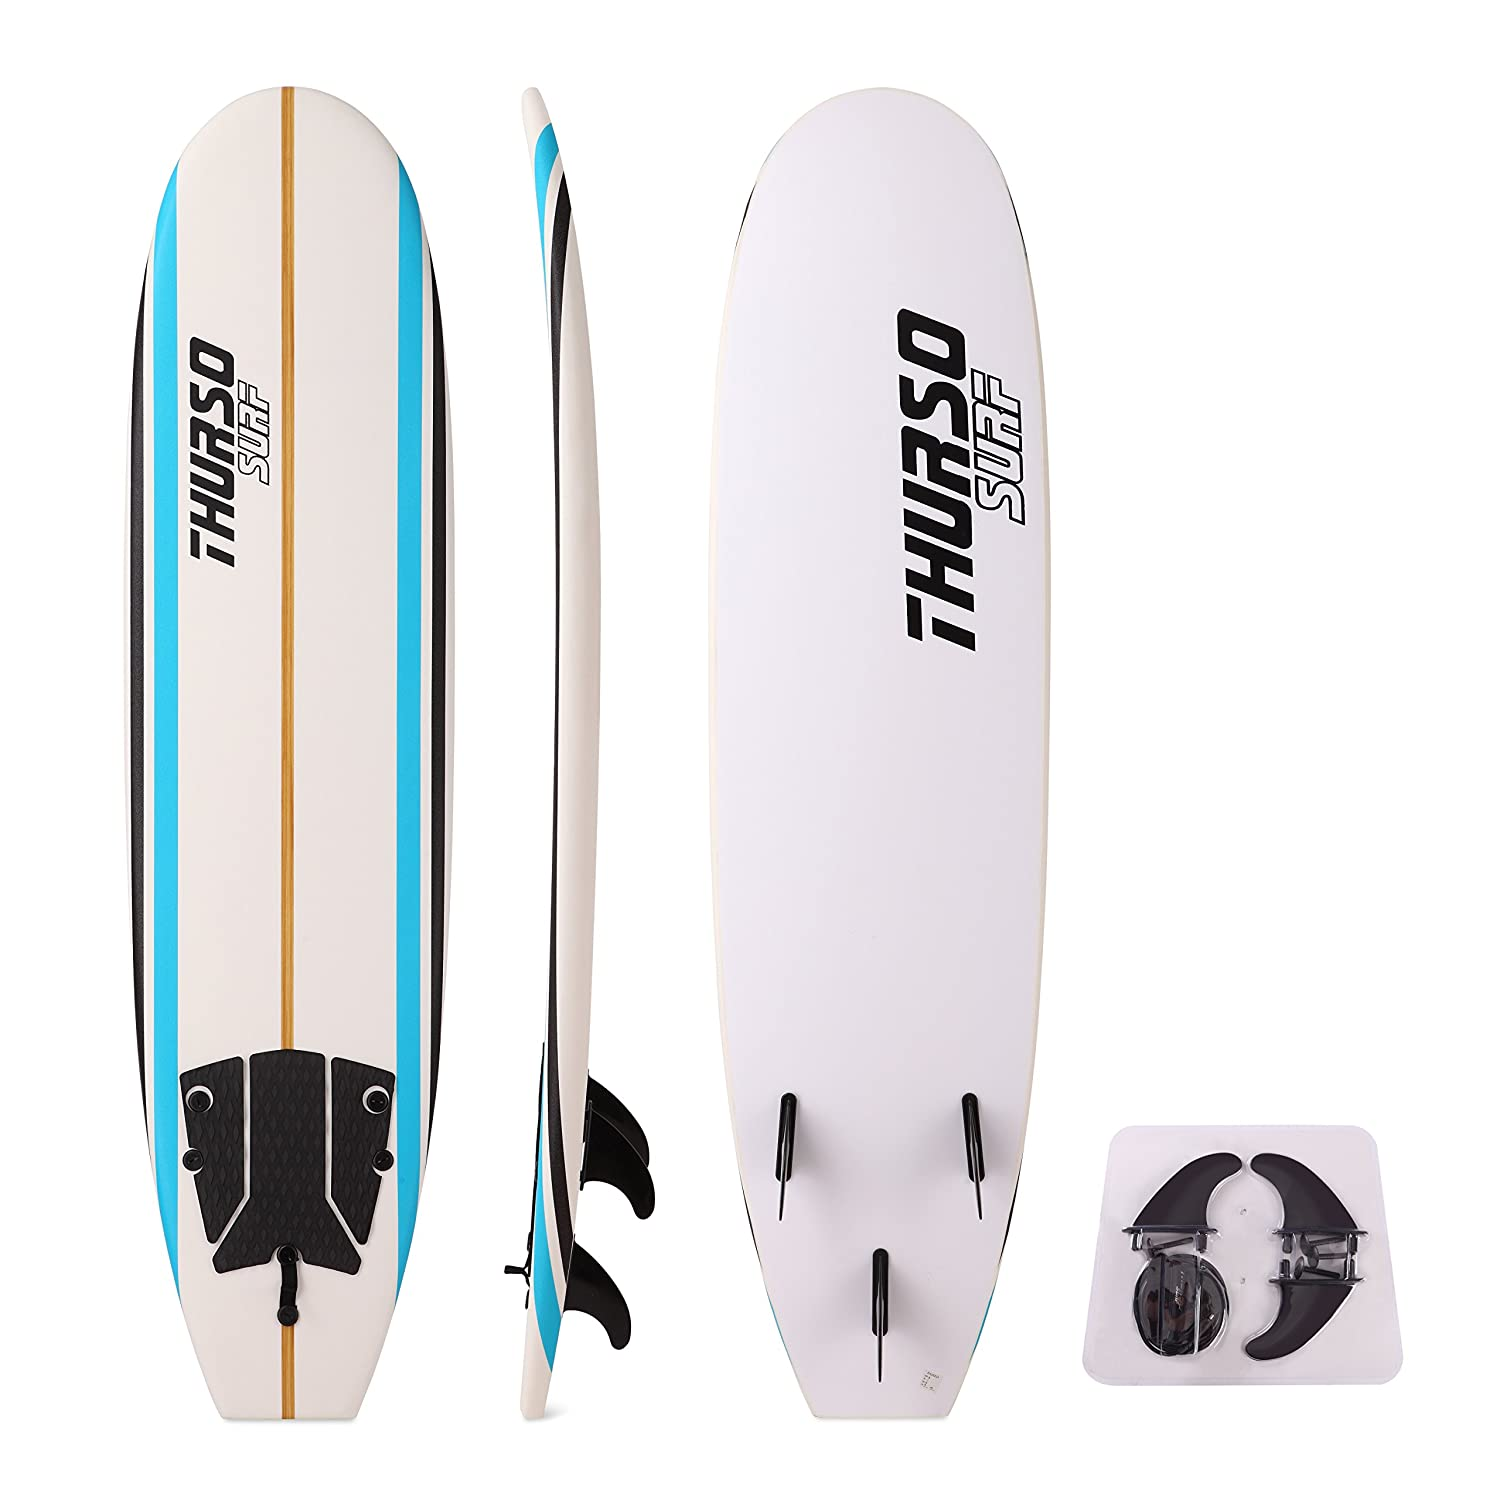 Amazon.com : THURSO SURF Aero 7 Soft Top Surfboard Package Includes Three Fins Double Stainless Steel Swivel Leash EPS Core IXPE Deck HDPE Slick Bottom ...